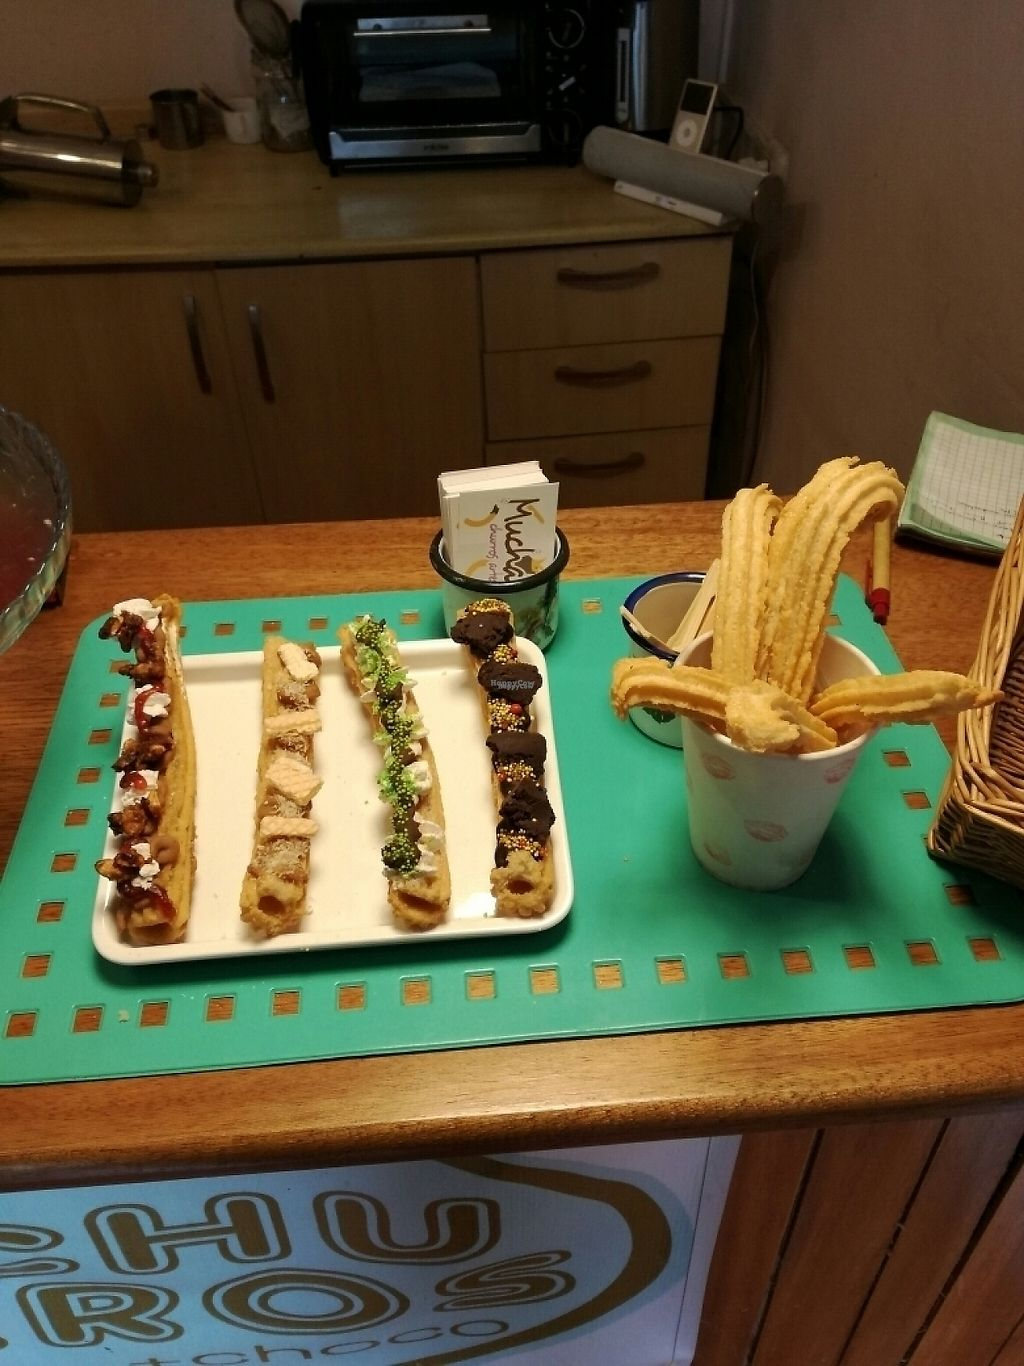 """Photo of The Churro Bar & Vegan Bakery  by <a href=""""/members/profile/elisou"""">elisou</a> <br/>churros fiesta! <br/> March 9, 2017  - <a href='/contact/abuse/image/86714/234369'>Report</a>"""